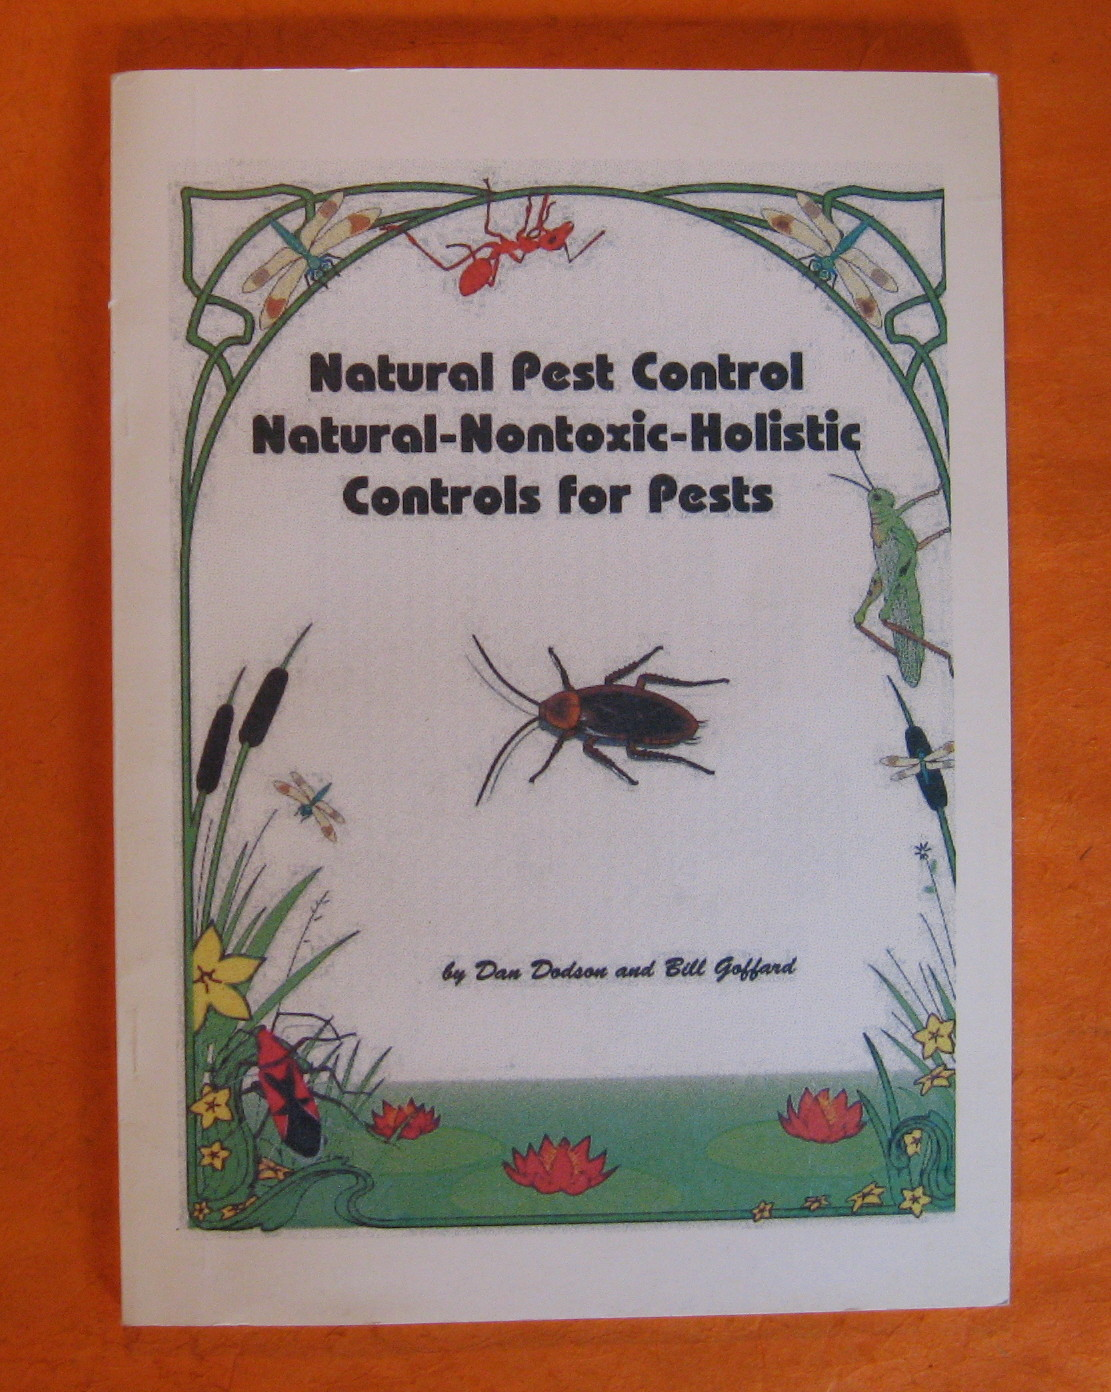 Natural Pest Control:  Natural Nontoxic Holistic Controls for Pests, Dodson, Don and Goffard, Bill